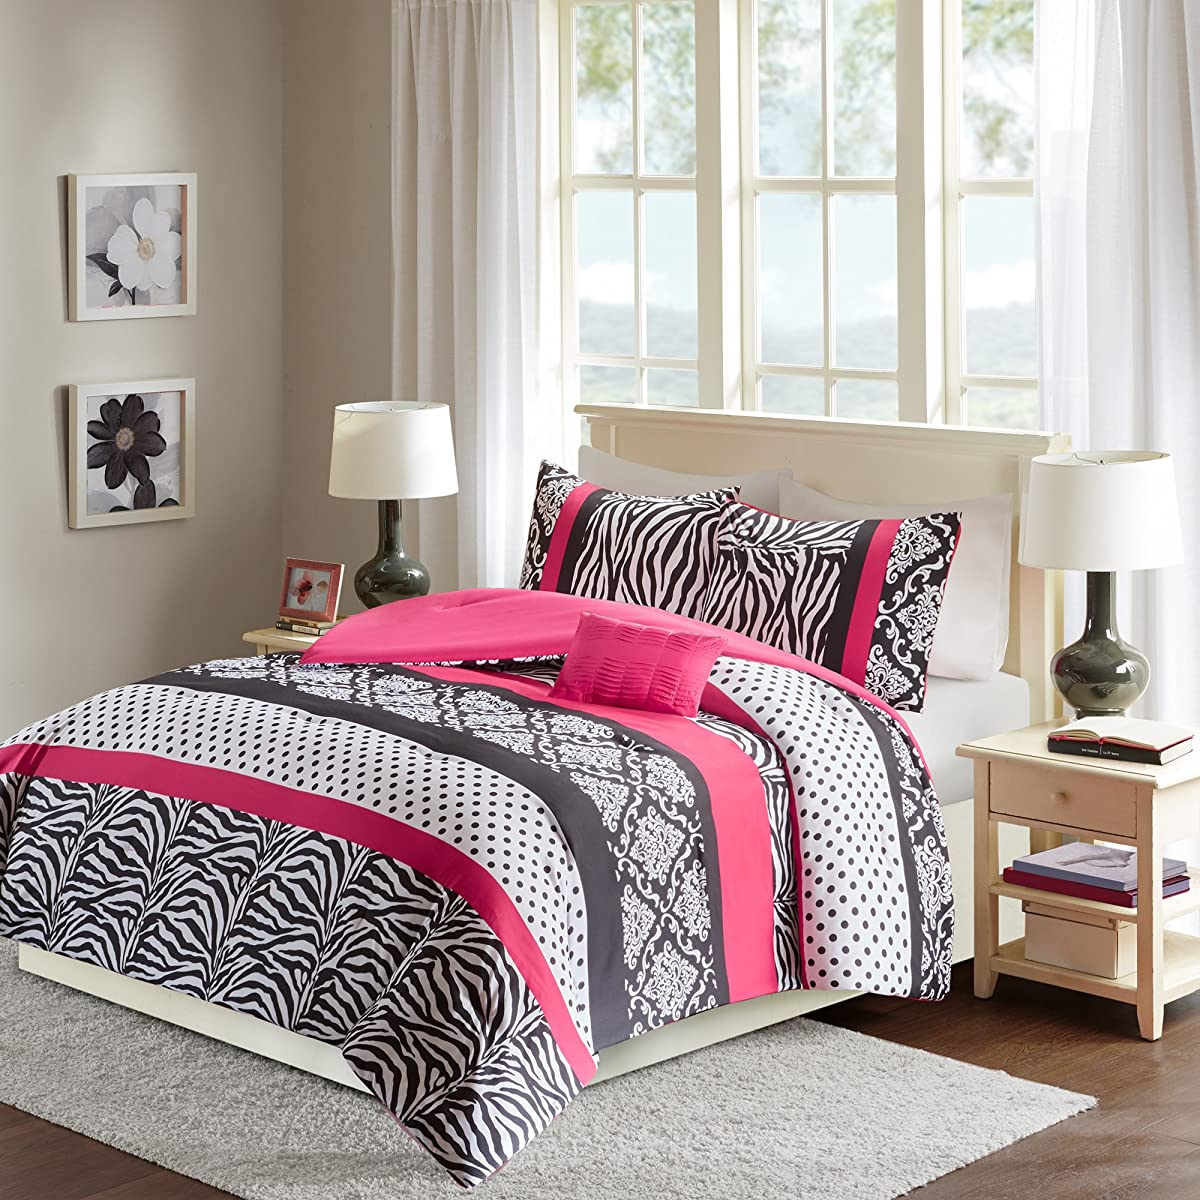 Comfort Spaces - Sally Comforter Set - 4 Piece - Hot Pink & Black - Zebra, Damask, Polka dot print - Queen Size, includes 1 Comforter, 2 Shams, 1 Decorative Pillow